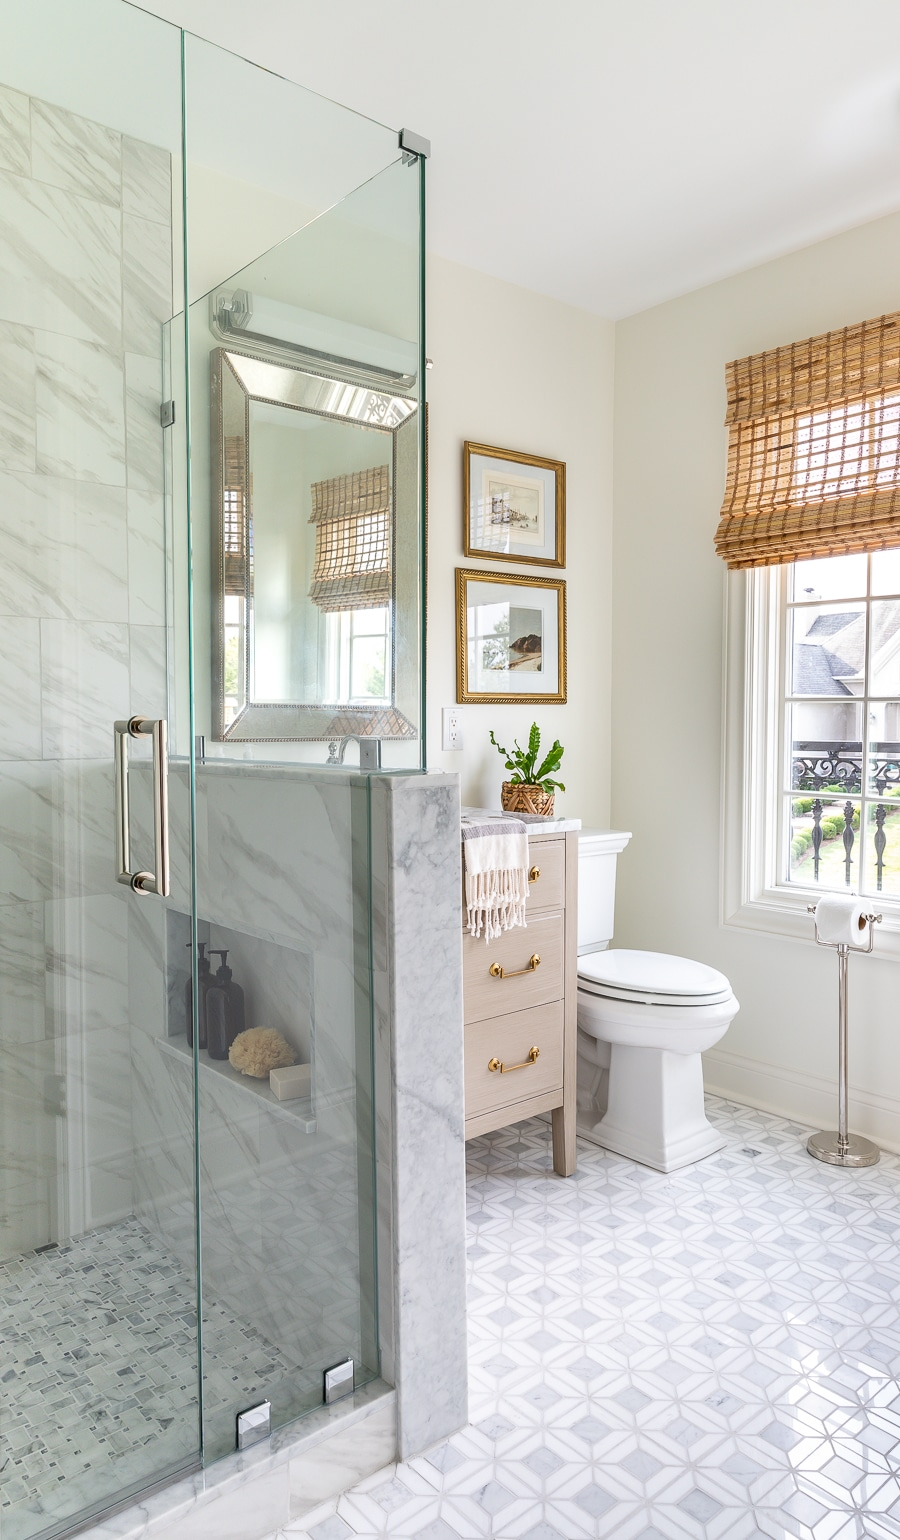 Amazing guest bathroom renovation! Look at that gorgeous marble tile!